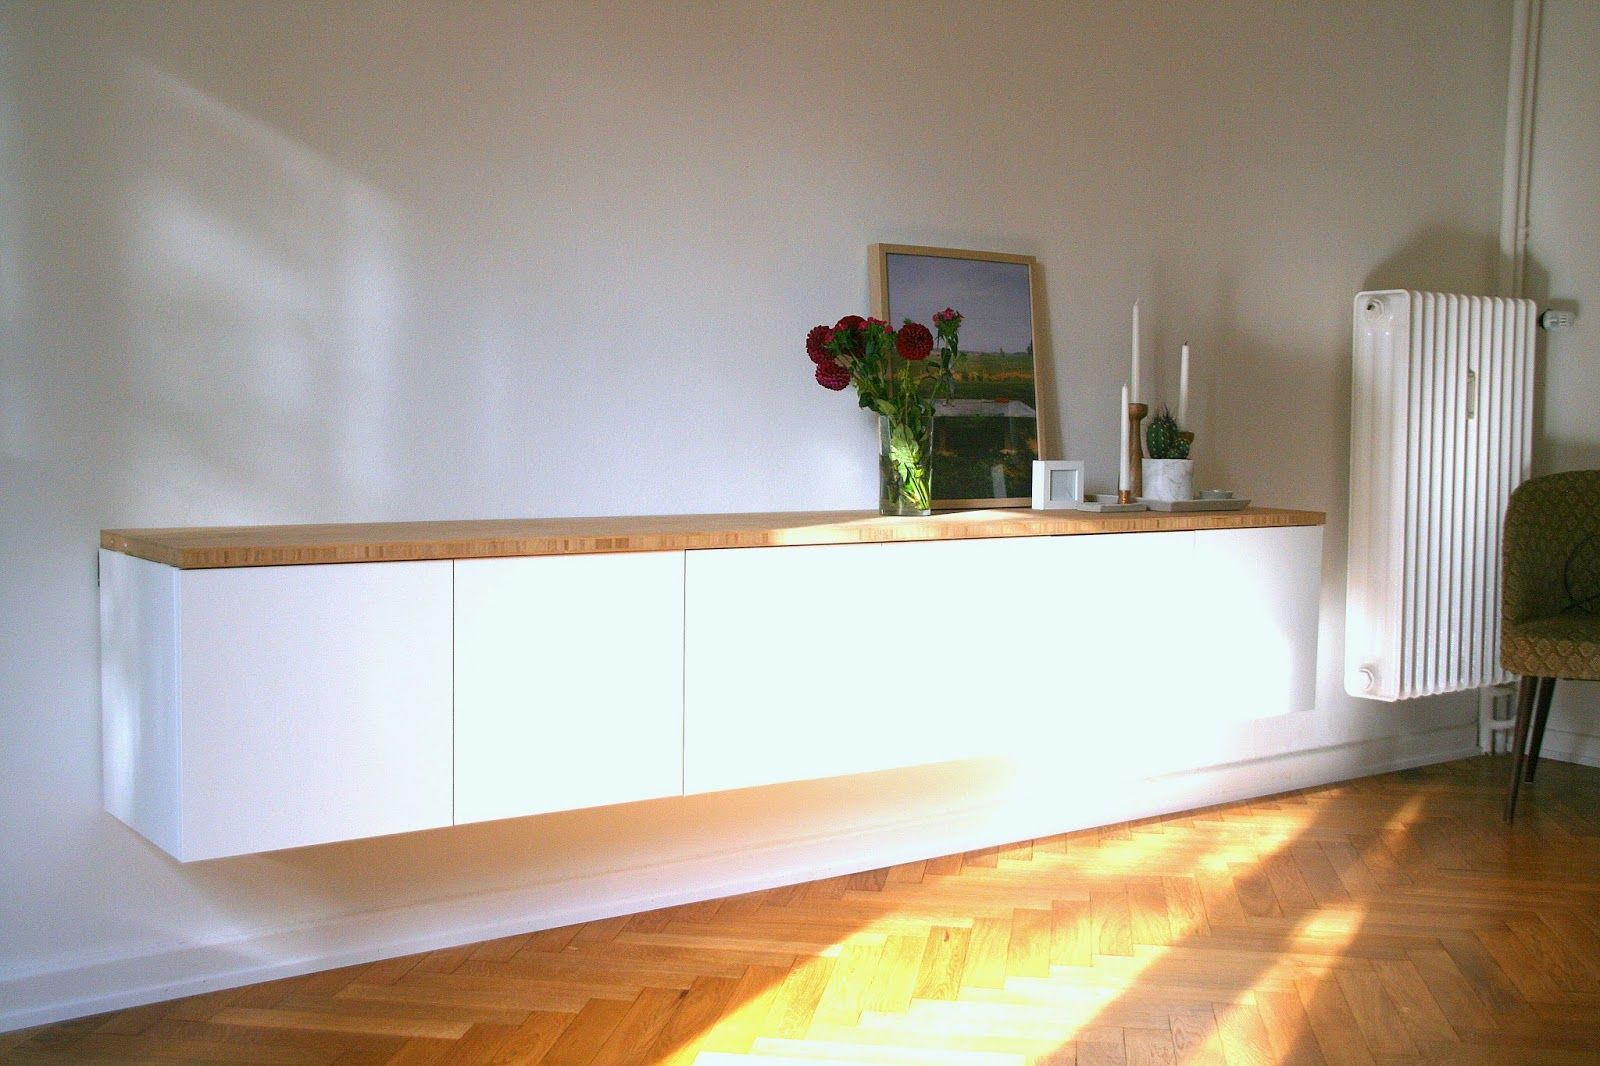 vida nullvier diy sideboard ikea hack home m bel wohnzimmer ikea m bel. Black Bedroom Furniture Sets. Home Design Ideas